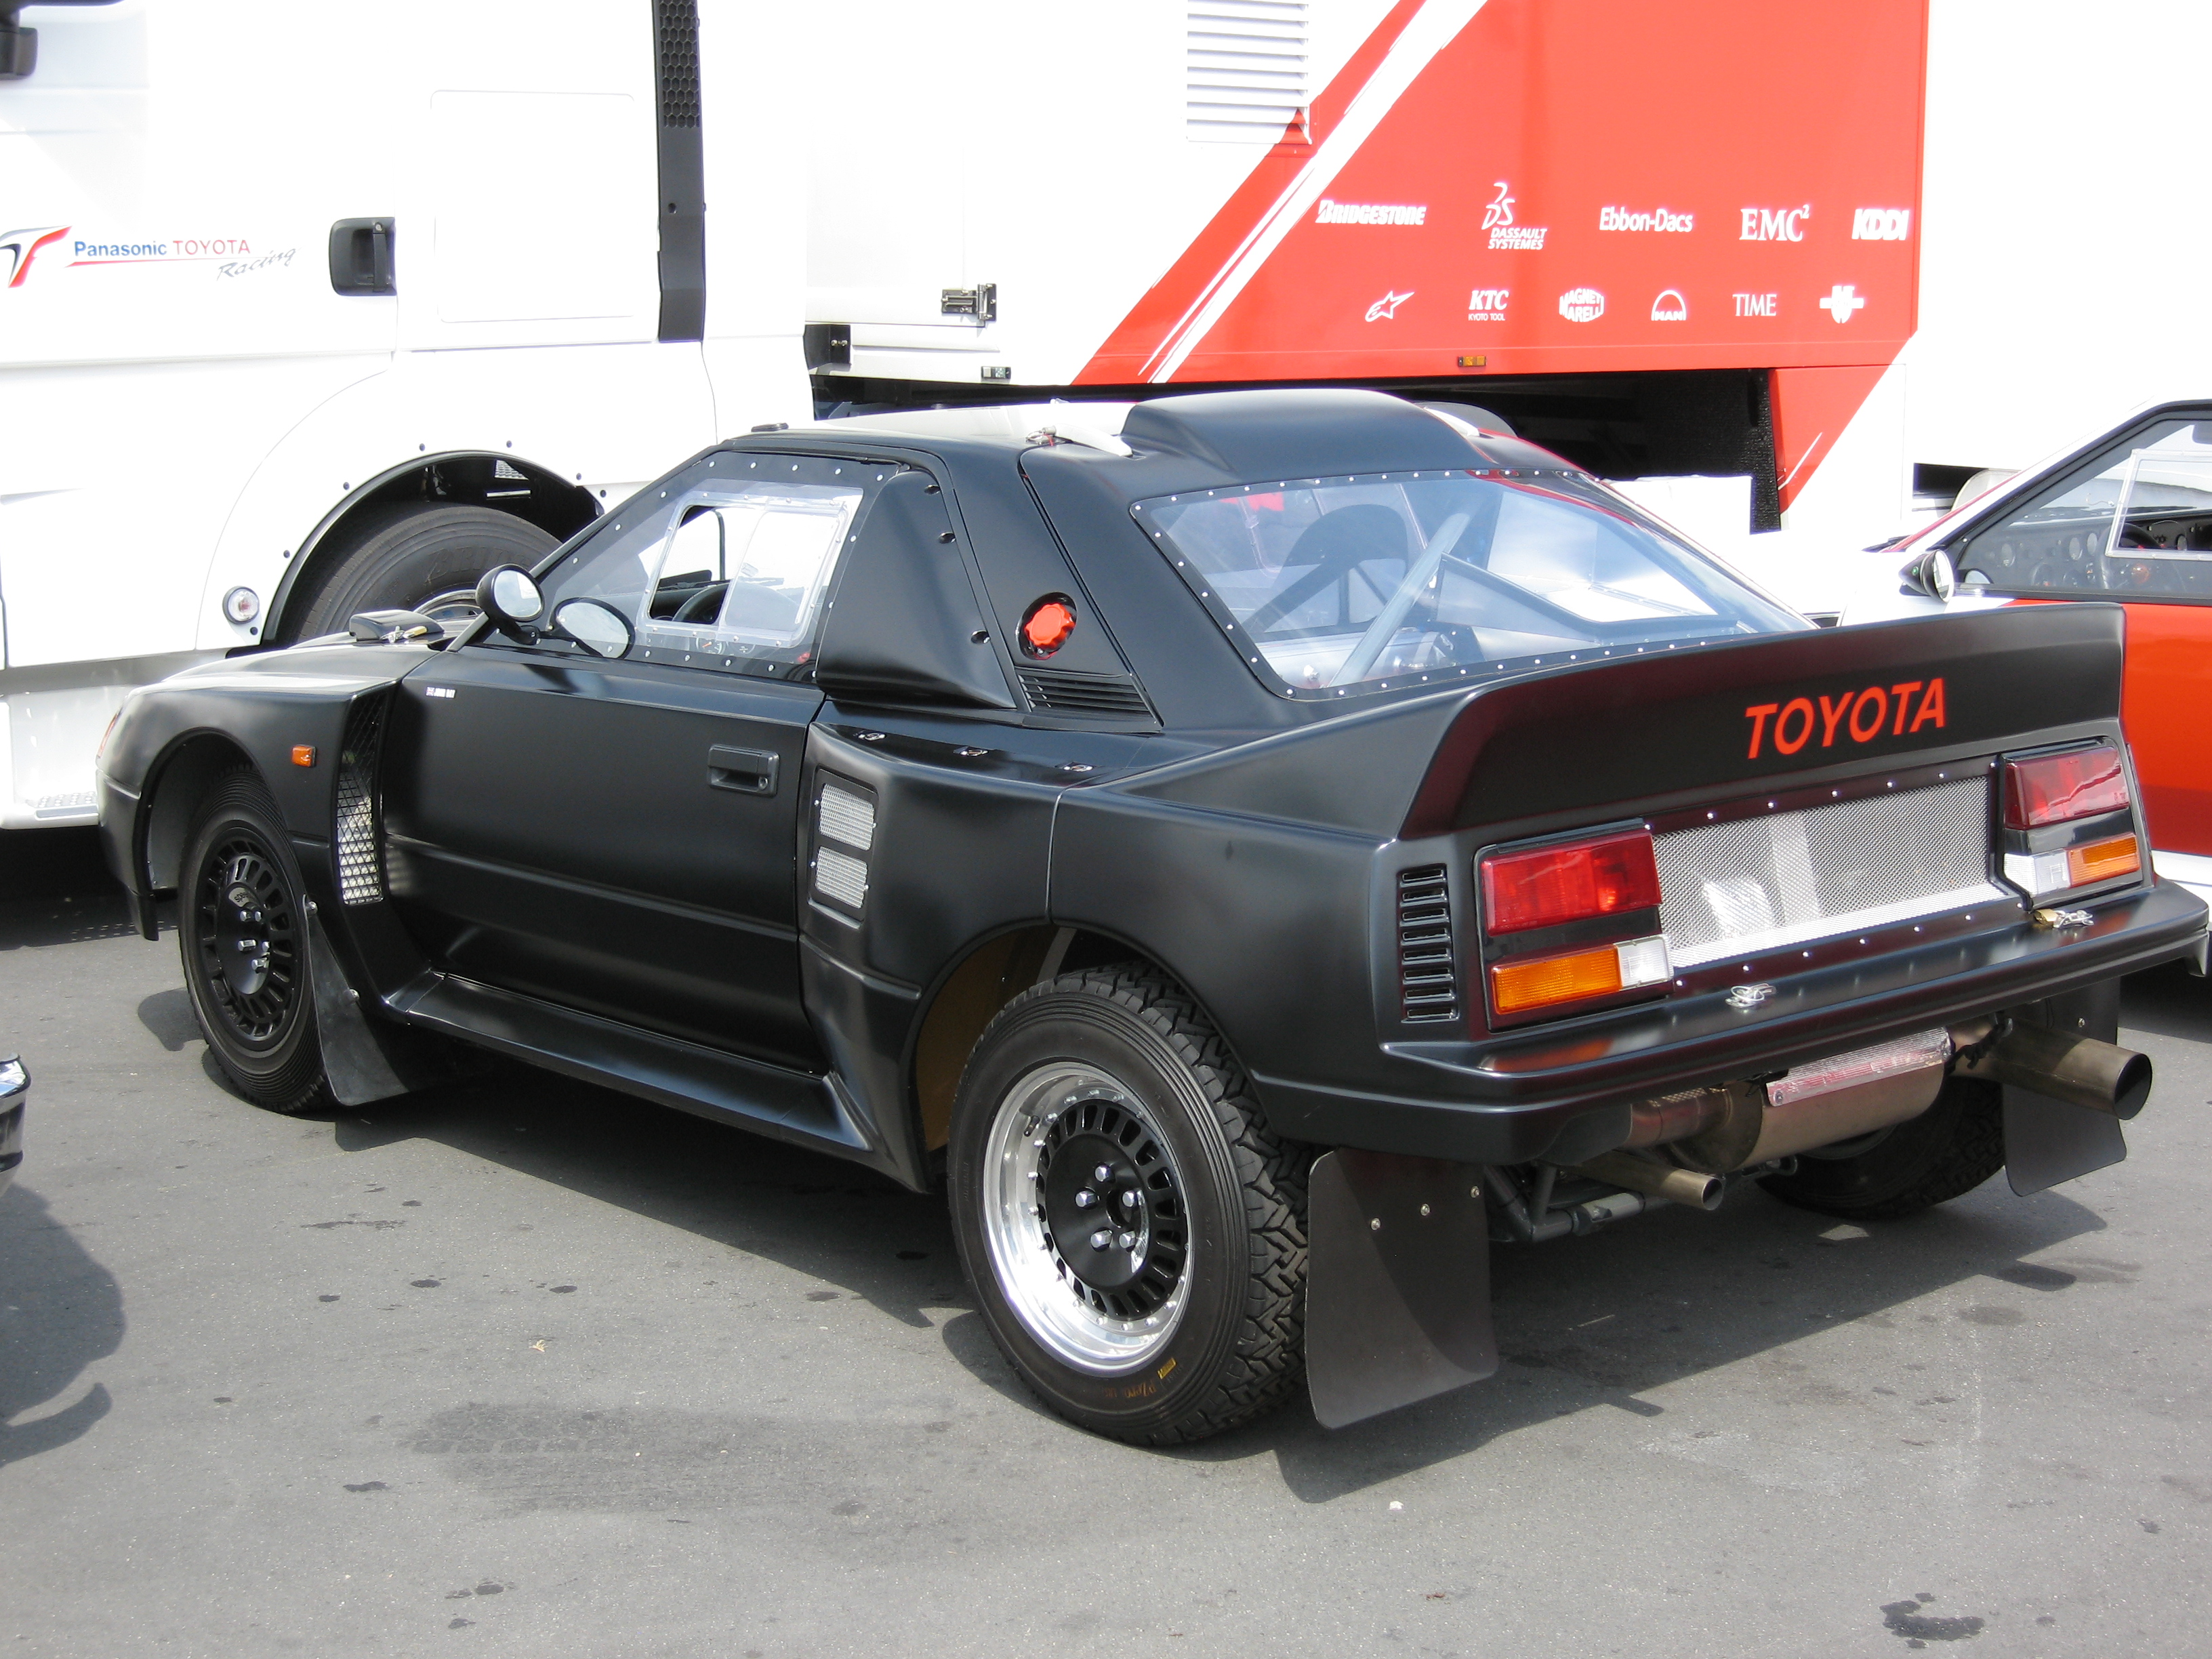 Toyota_MR2_Group_S.jpg